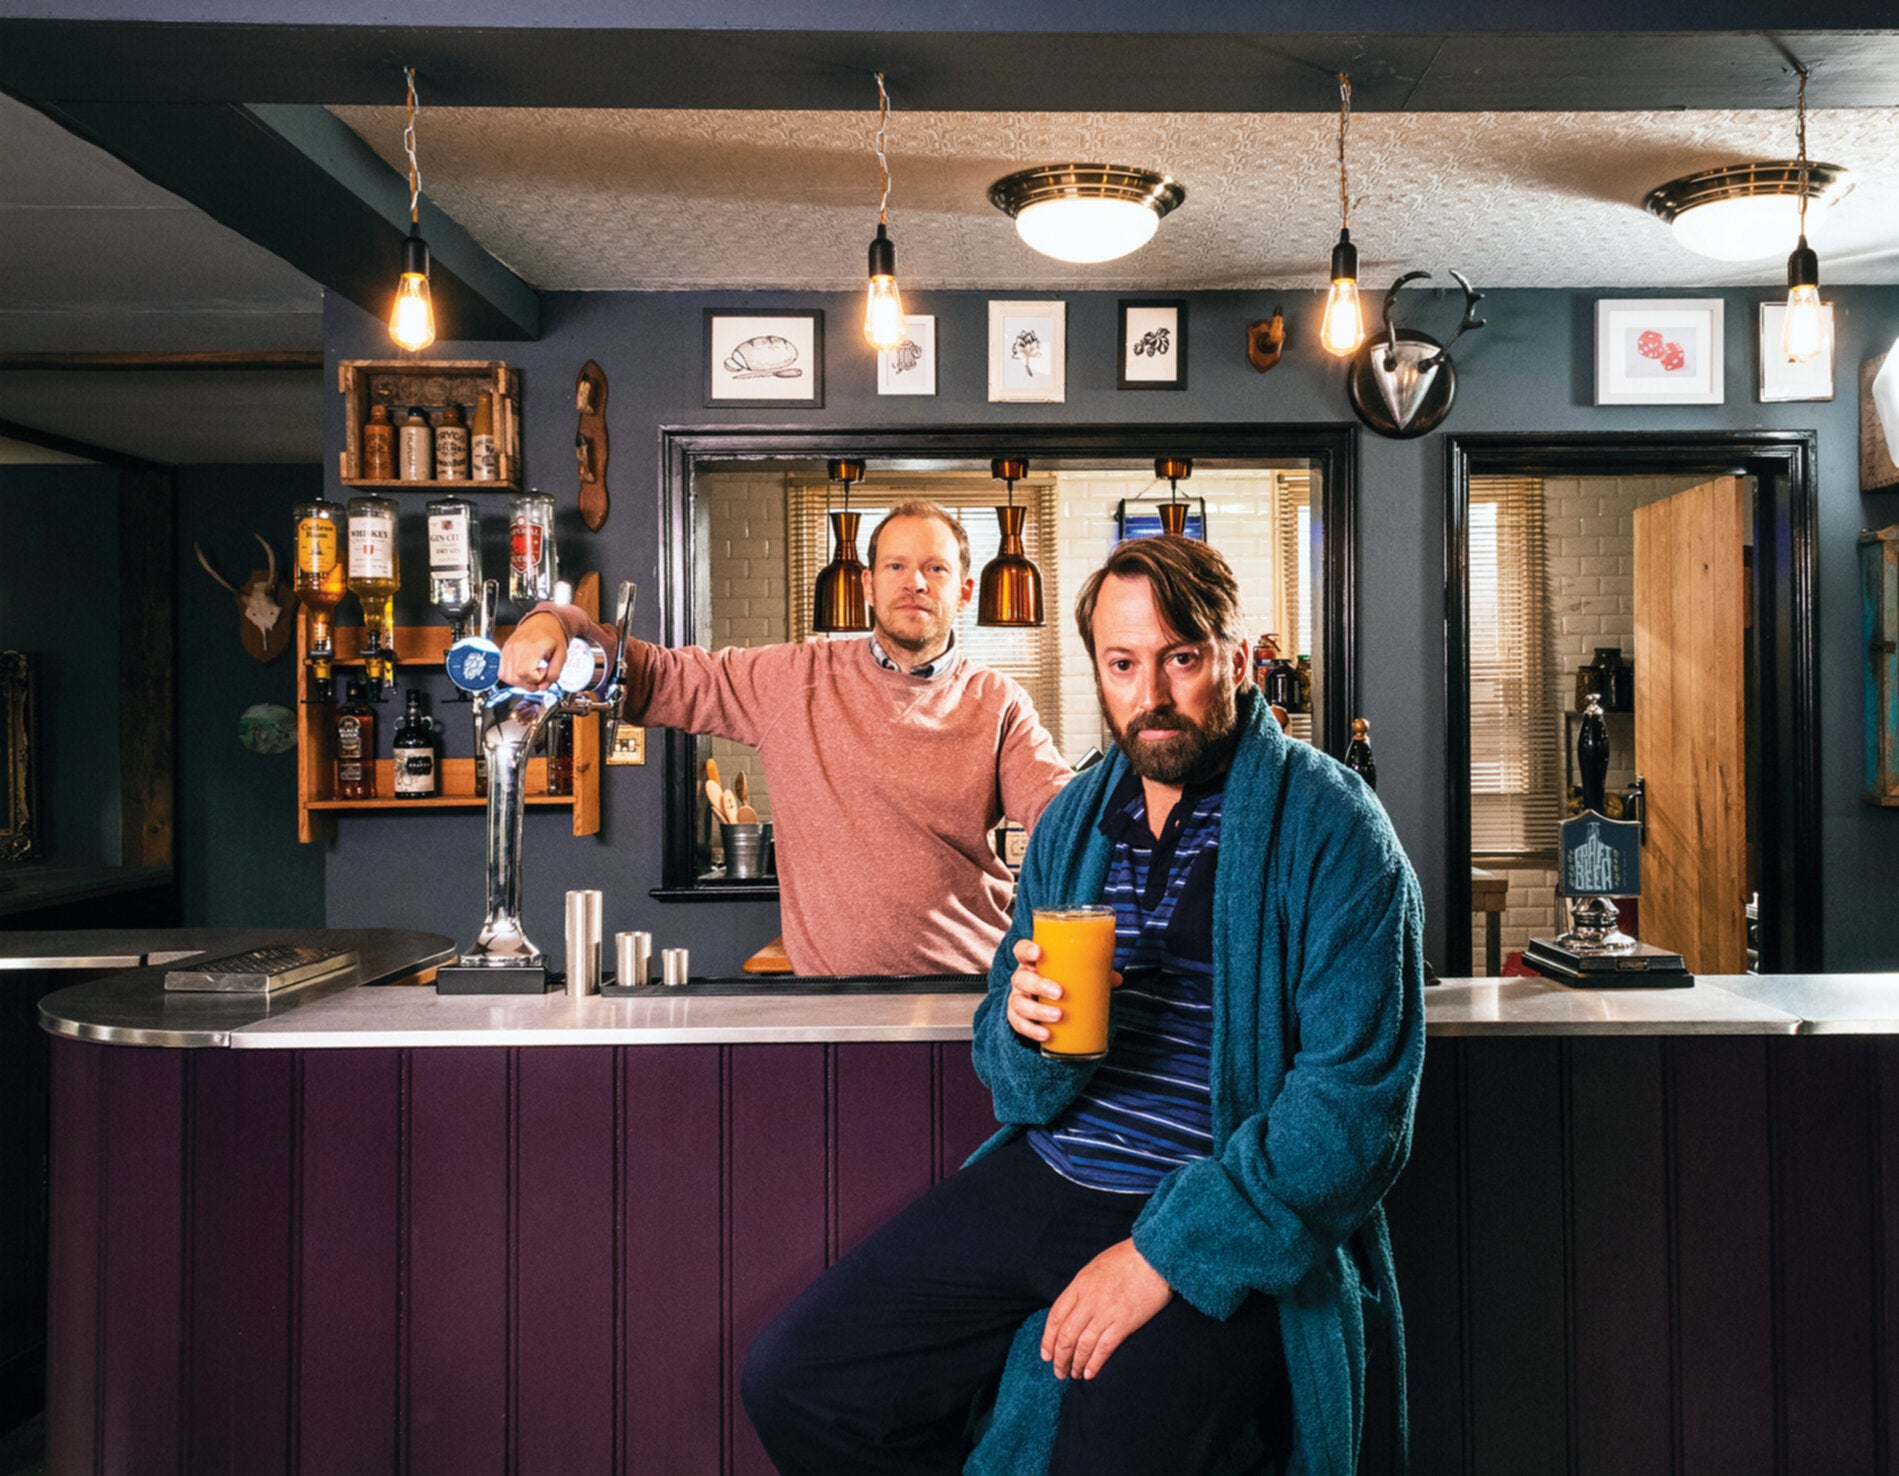 Channel 4's Back knows the provincial pub is Britain in microcosm